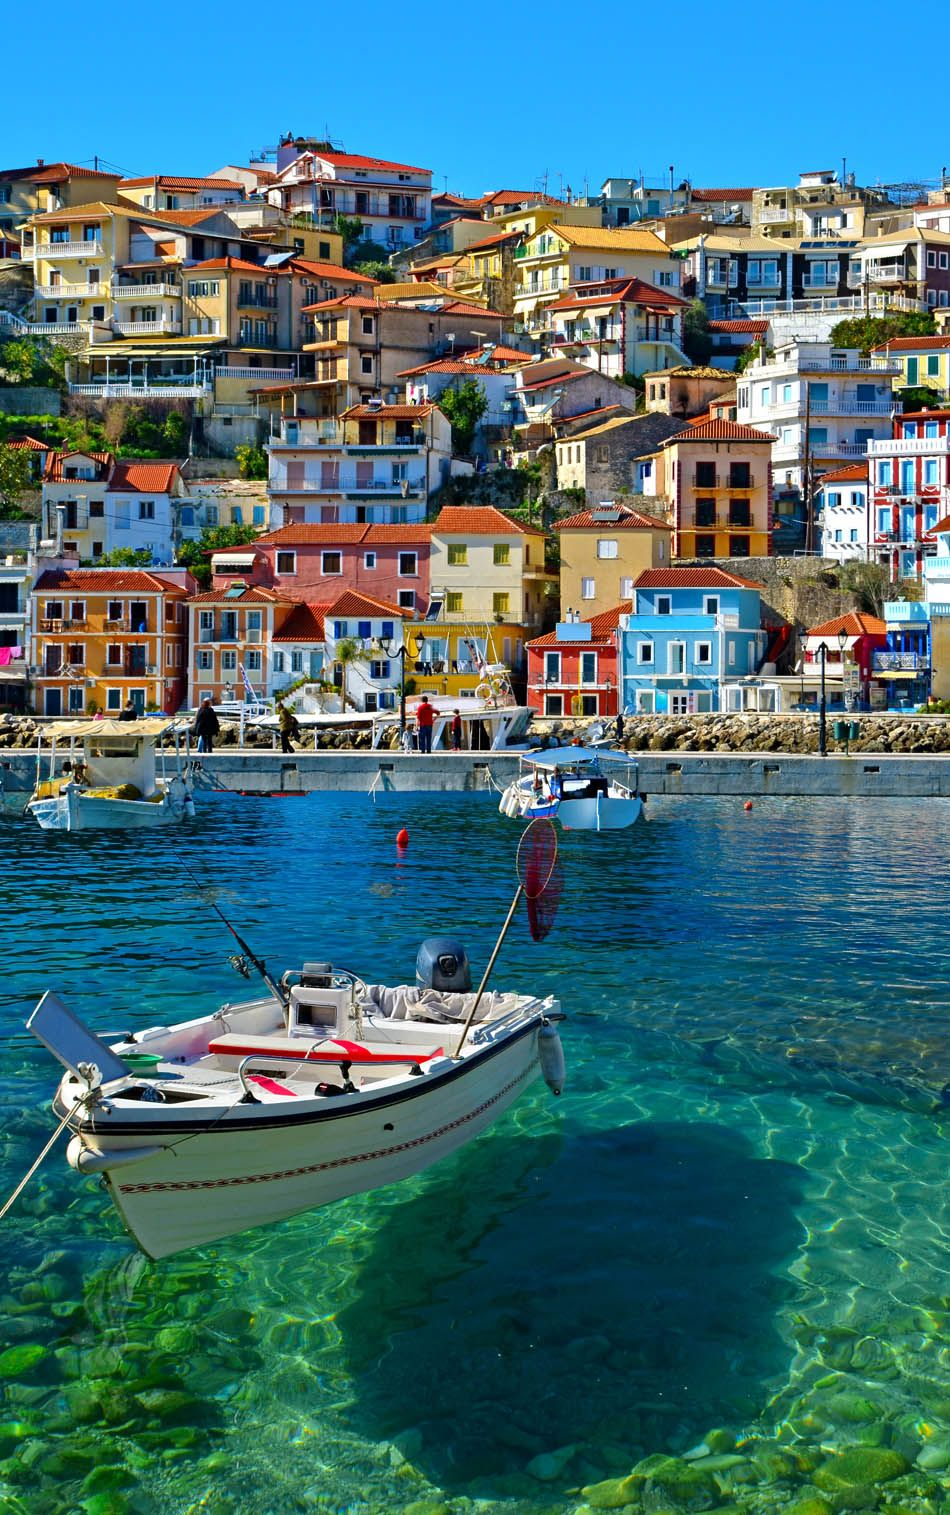 Colorful boat in Parga, Greece | 25 Gorgeous Pictures Of Greece That Will Take Your Breath Away #hotel